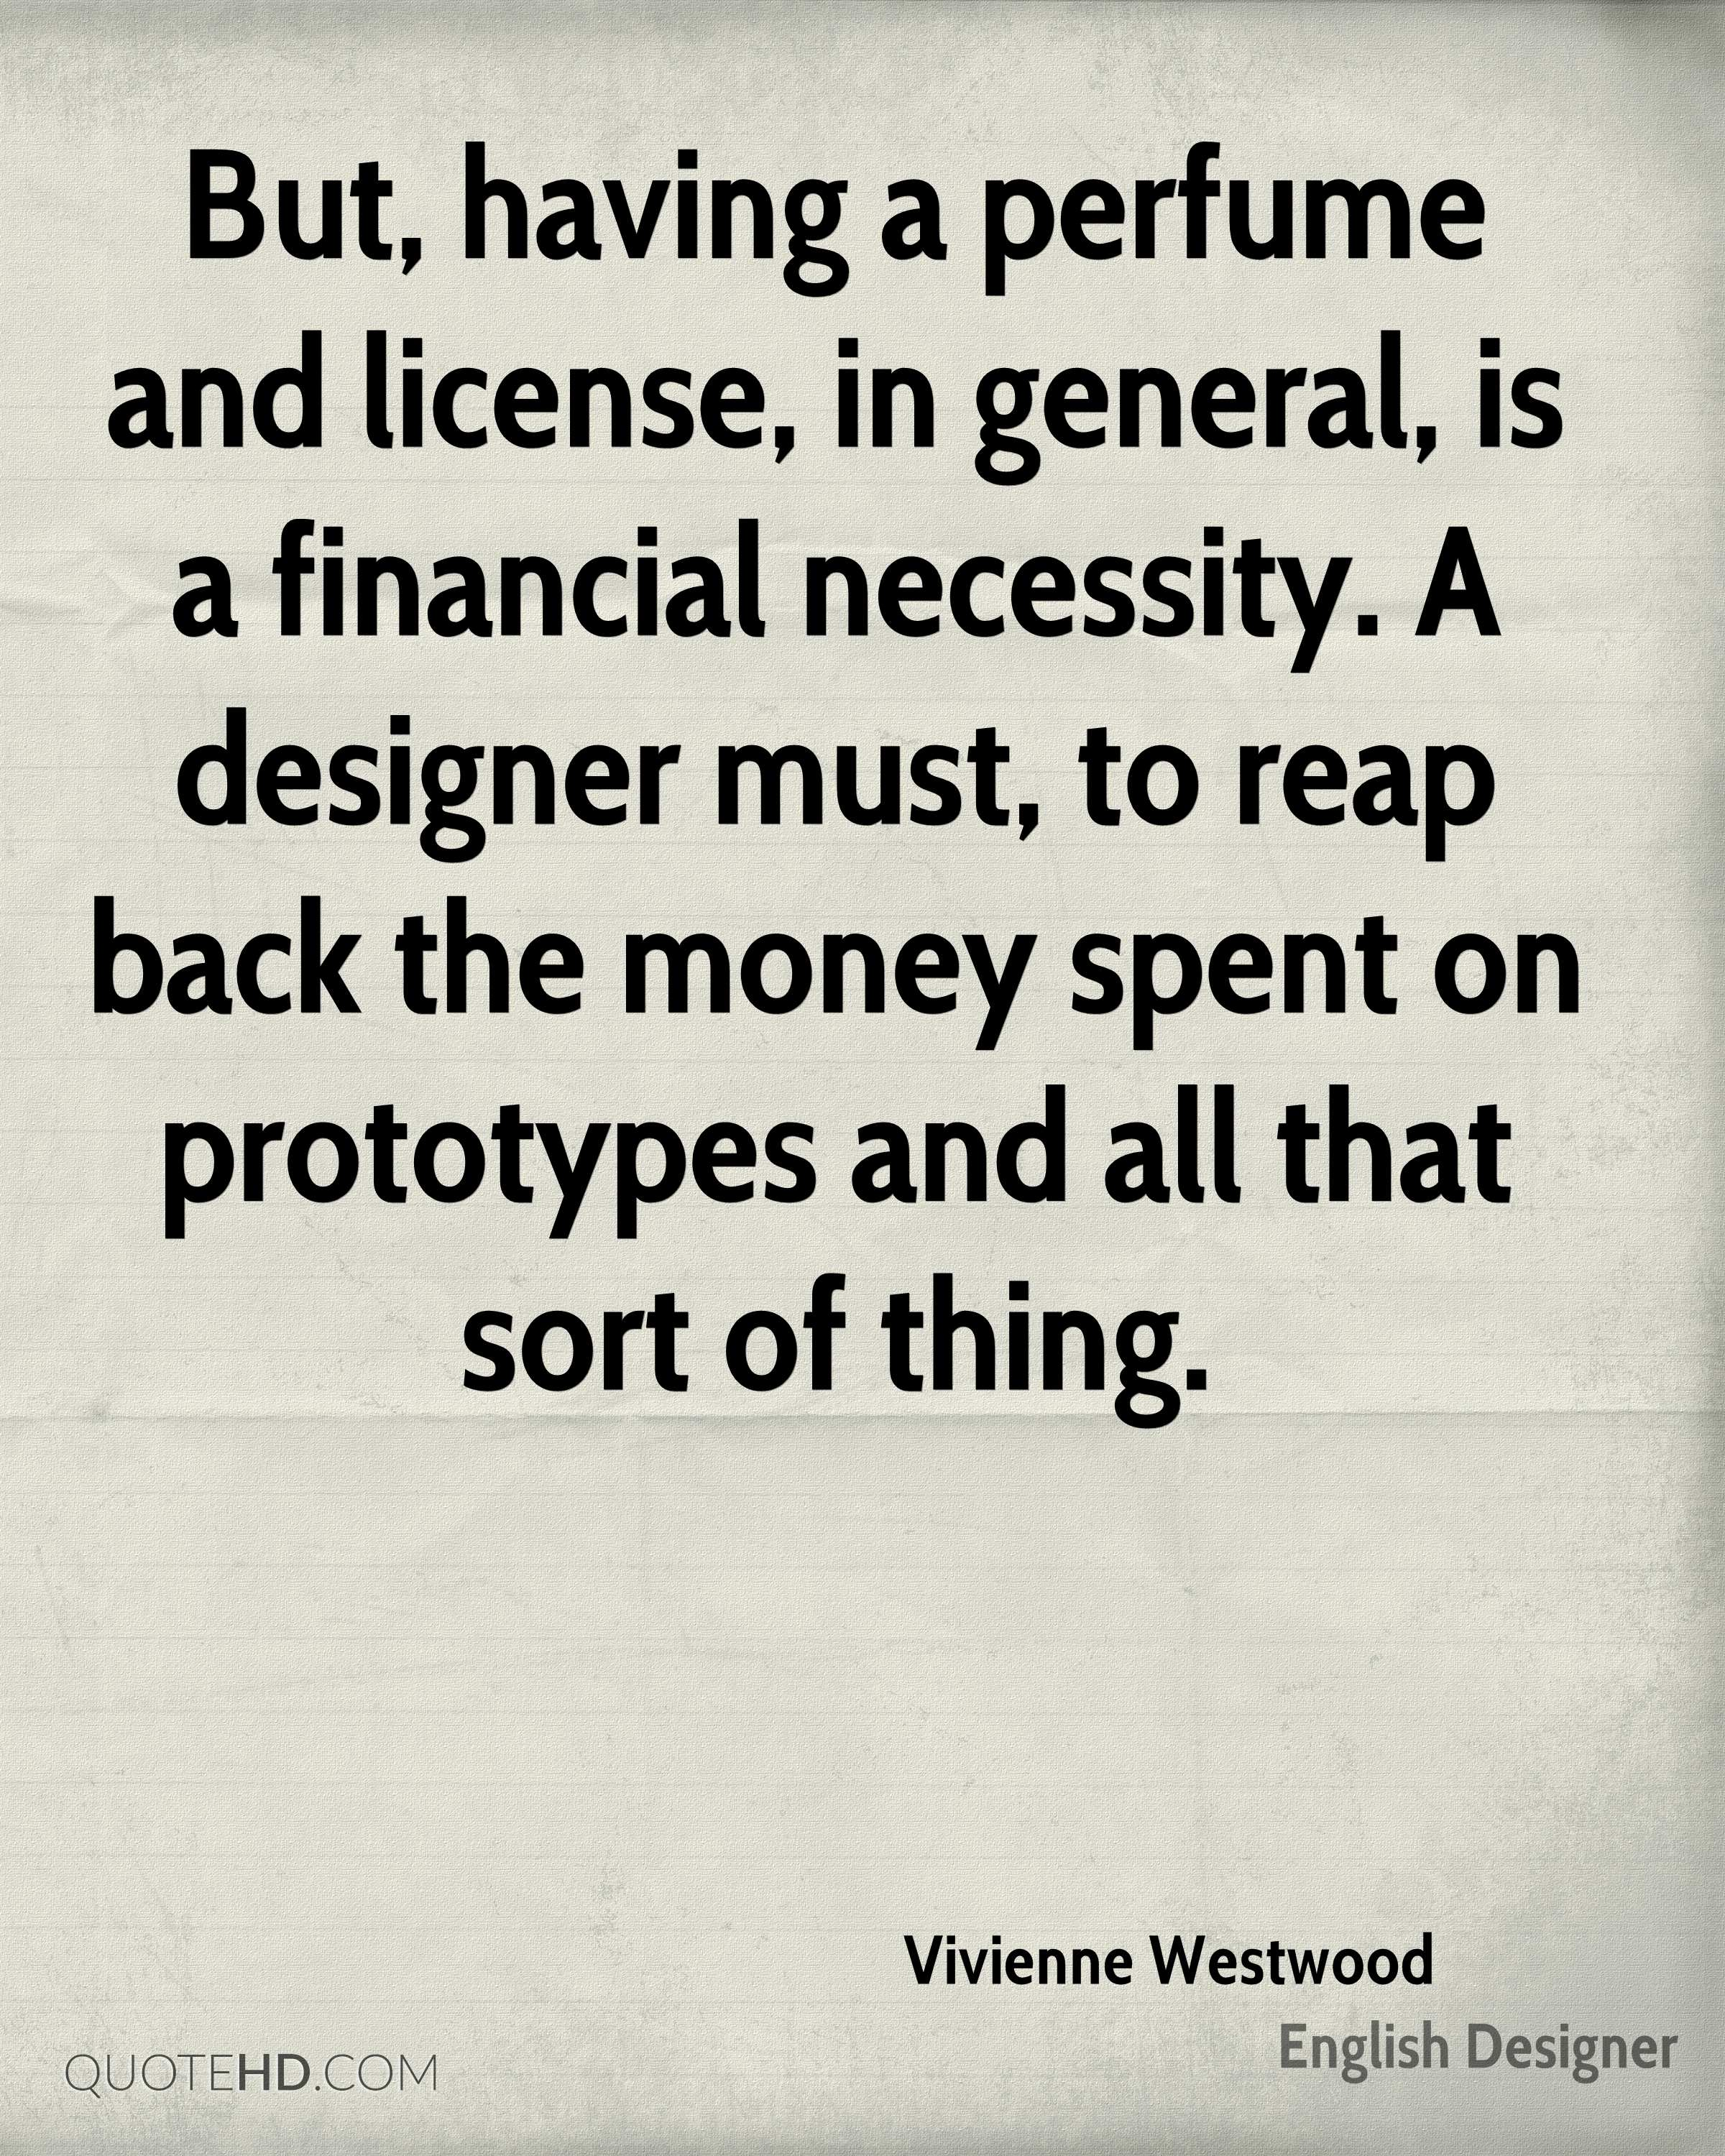 But, having a perfume and license, in general, is a financial necessity. A designer must, to reap back the money spent on prototypes and all that sort of thing.